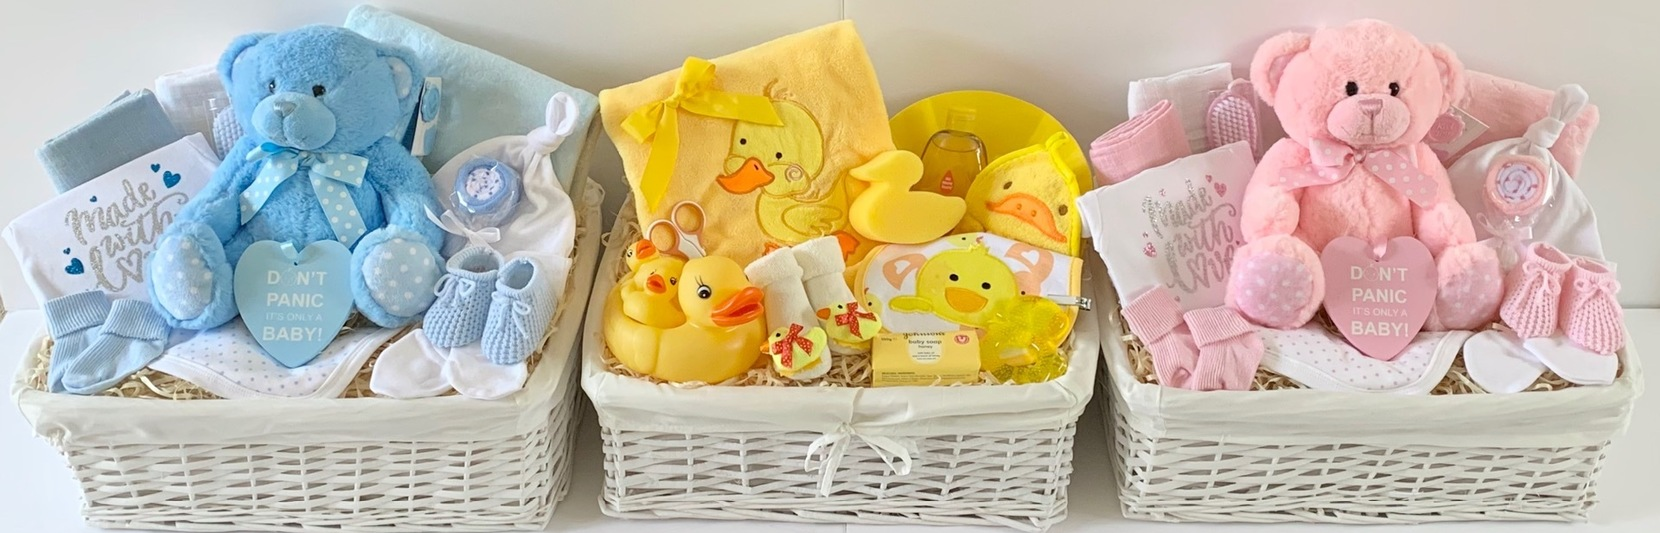 baby gift baskets hampers